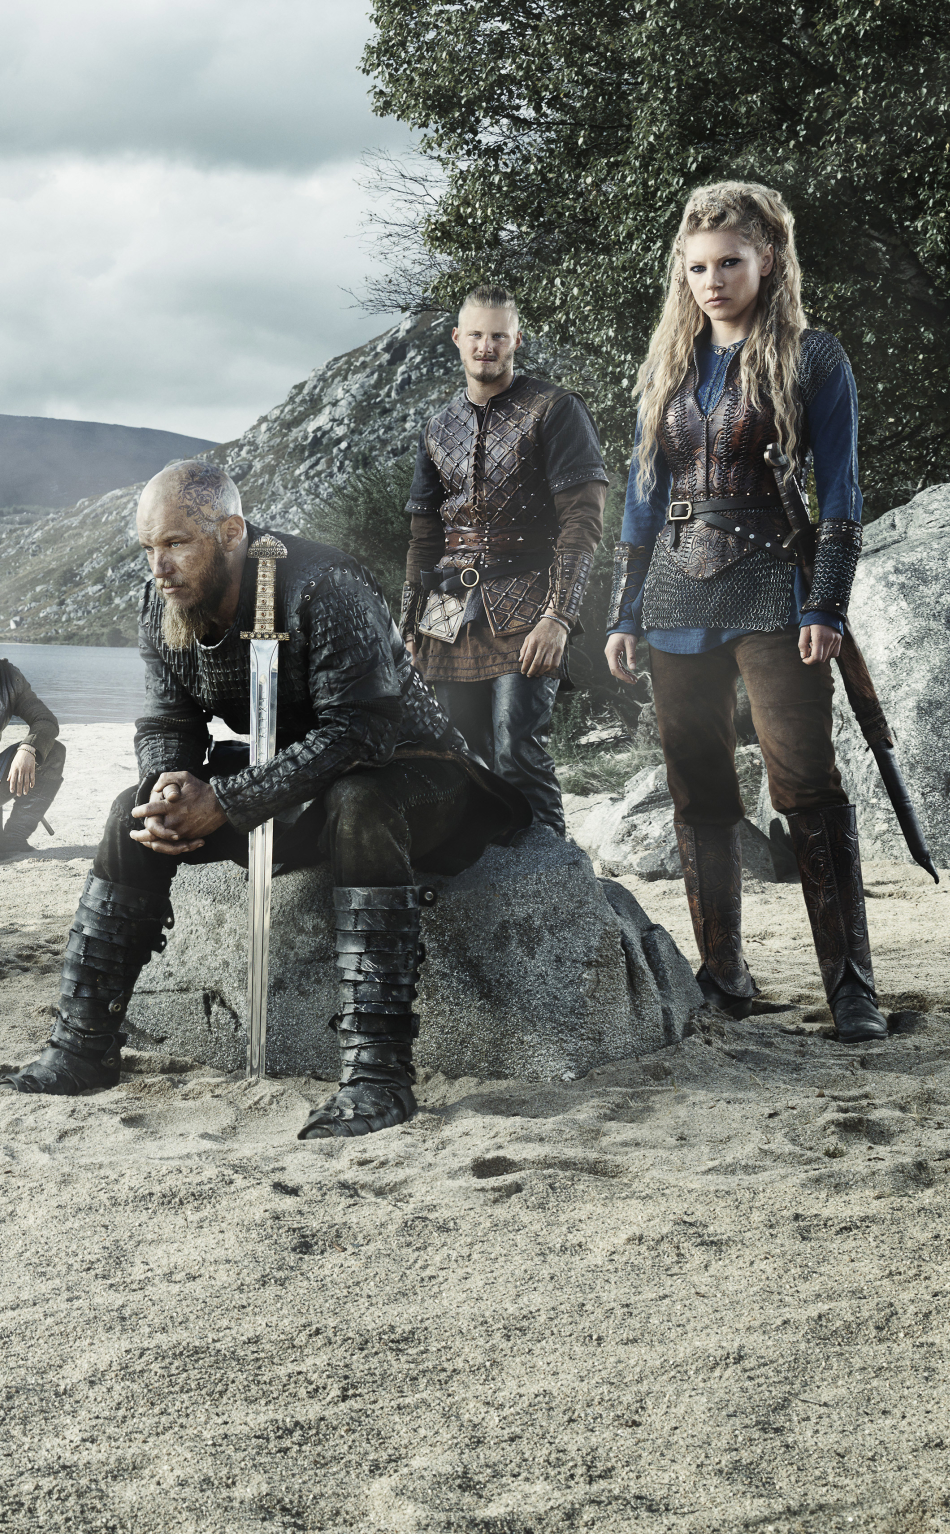 Video And Tv Cast For Samsung >> Vikings Cast, HD 8K Wallpaper